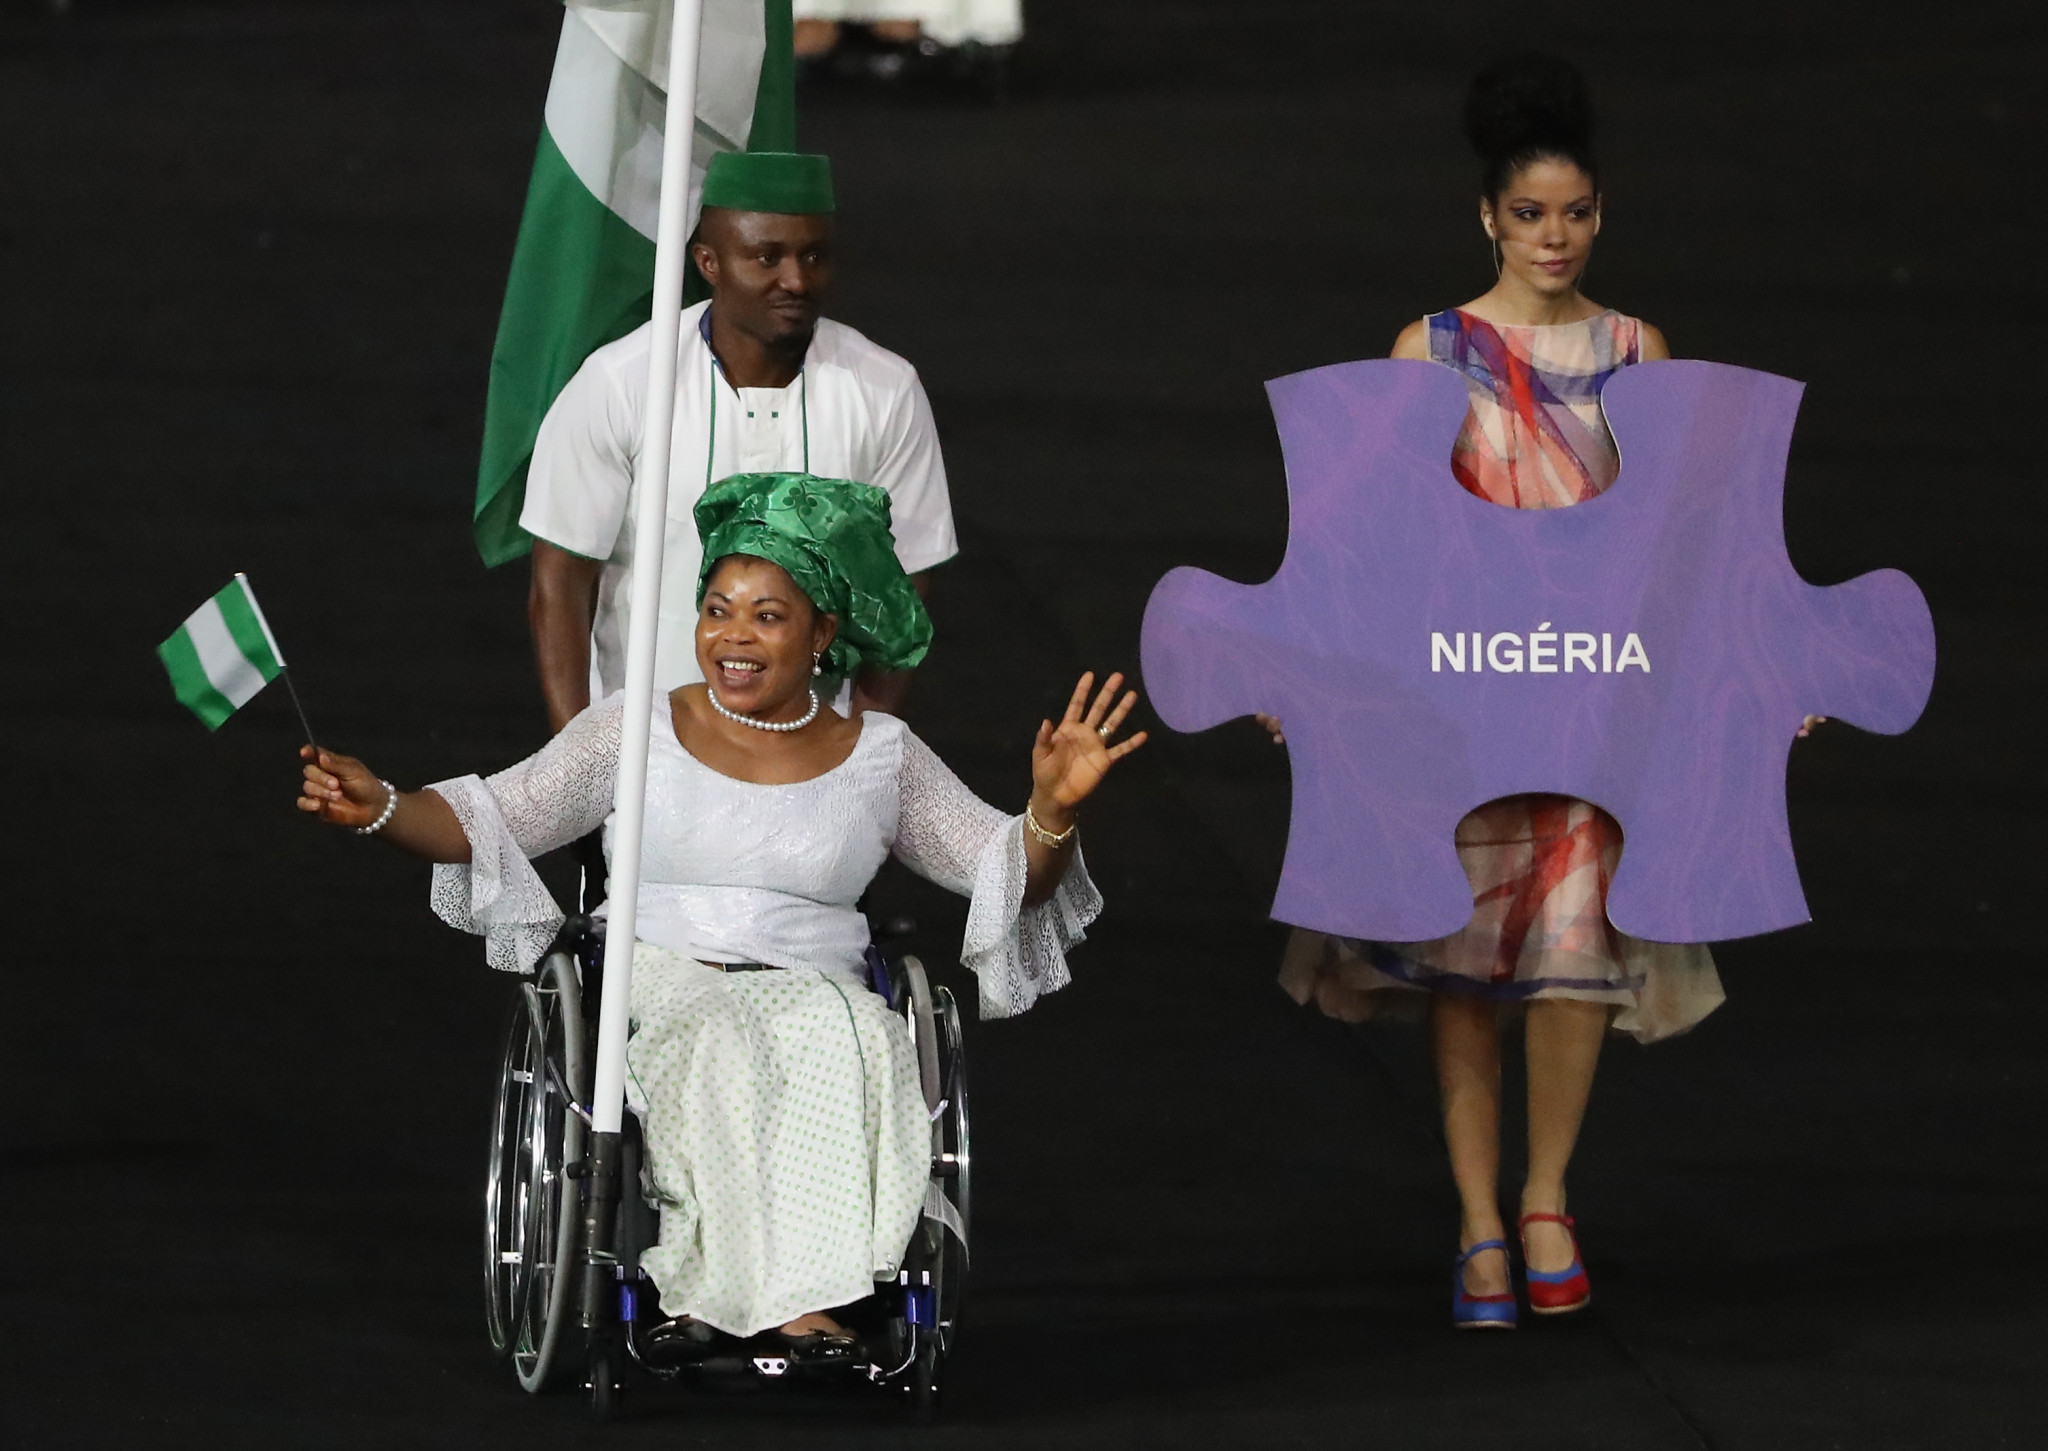 Nigeria's Rio 2016 gold medallist Lucy Ejike finished second in the voting ©Getty Images